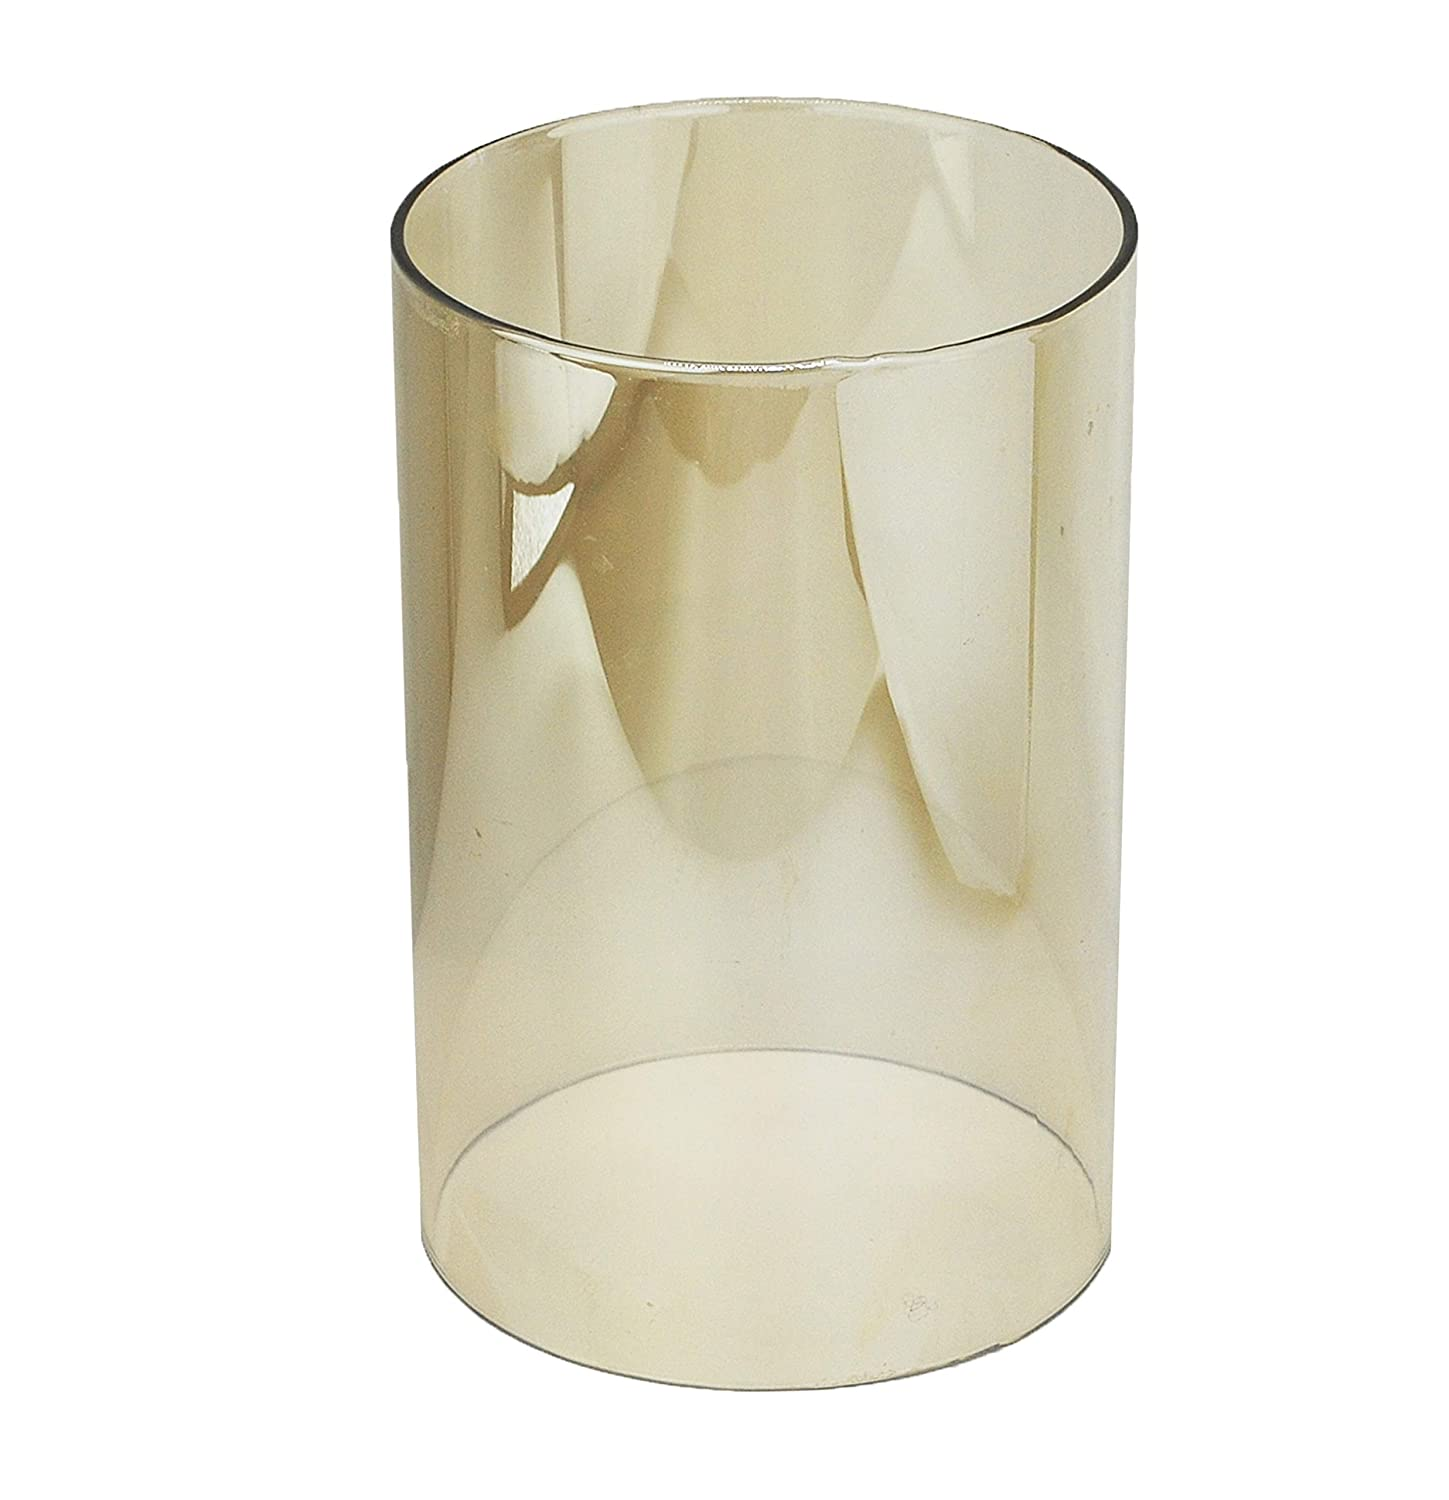 3.2//3.5//4//4.4//4.7 Inch U-play Cylinder Glass Vase 6 High 4 Wide Open End Clear Candle Holders Suitable for Hurricane Glass Candles of Any Size